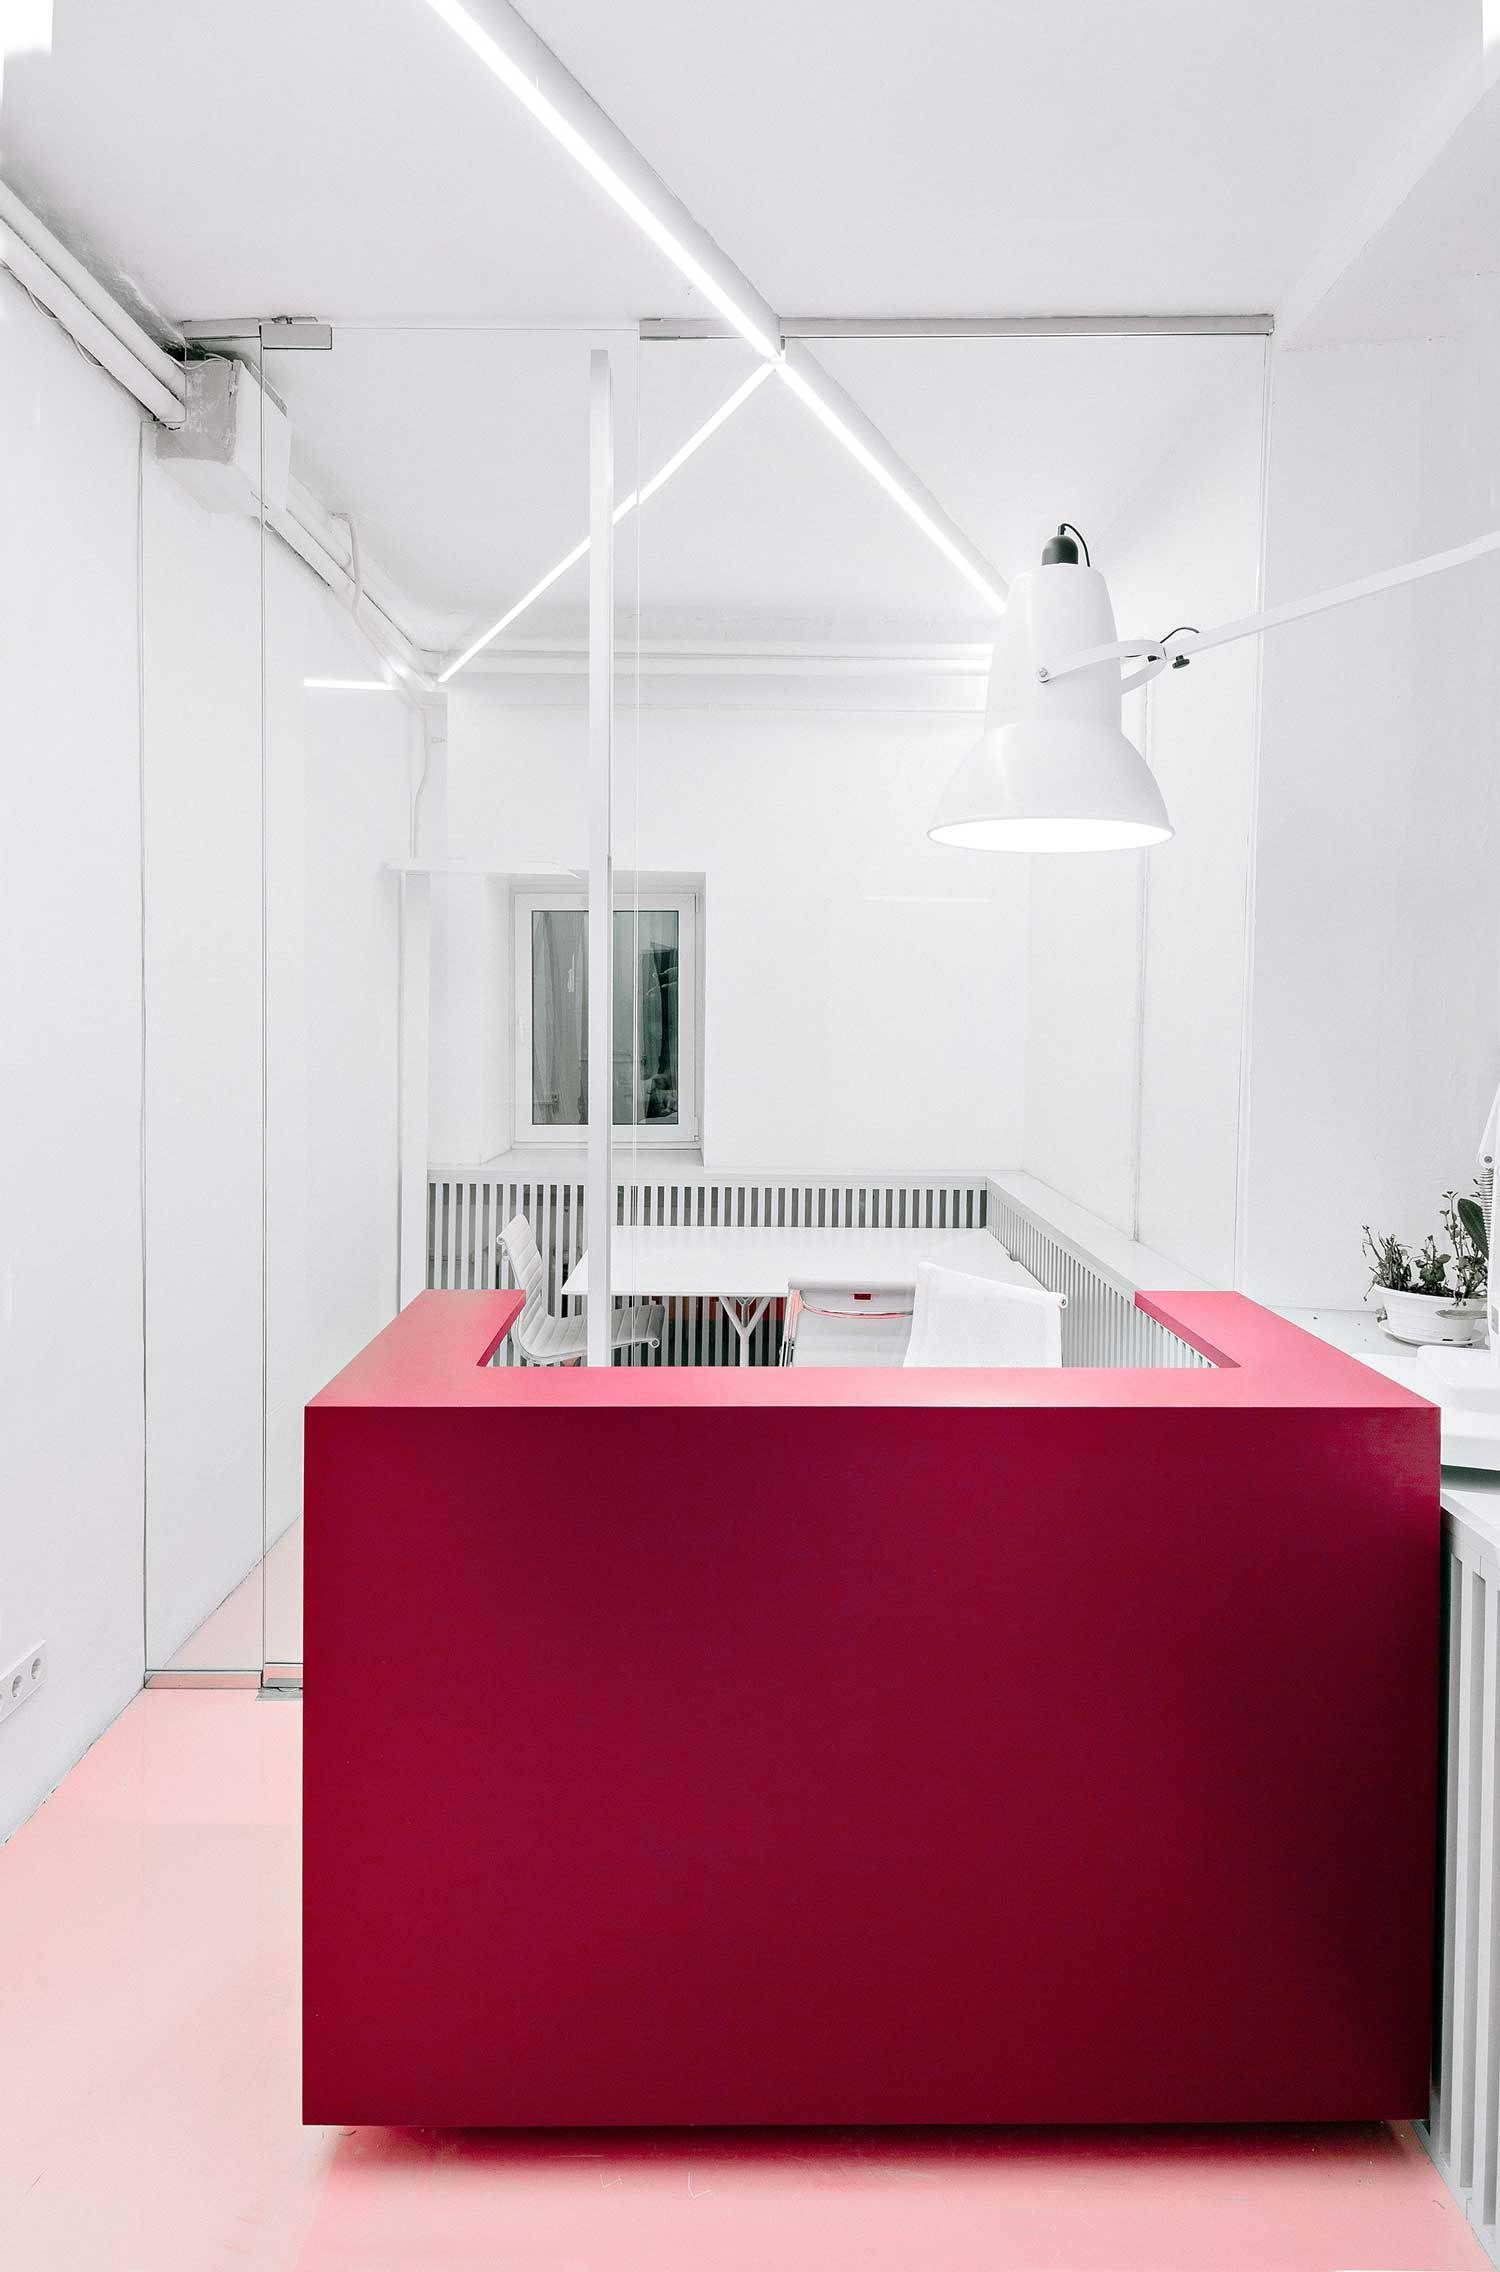 NGRS Recruiting Company HQ In Moscow By Crosby Studios.